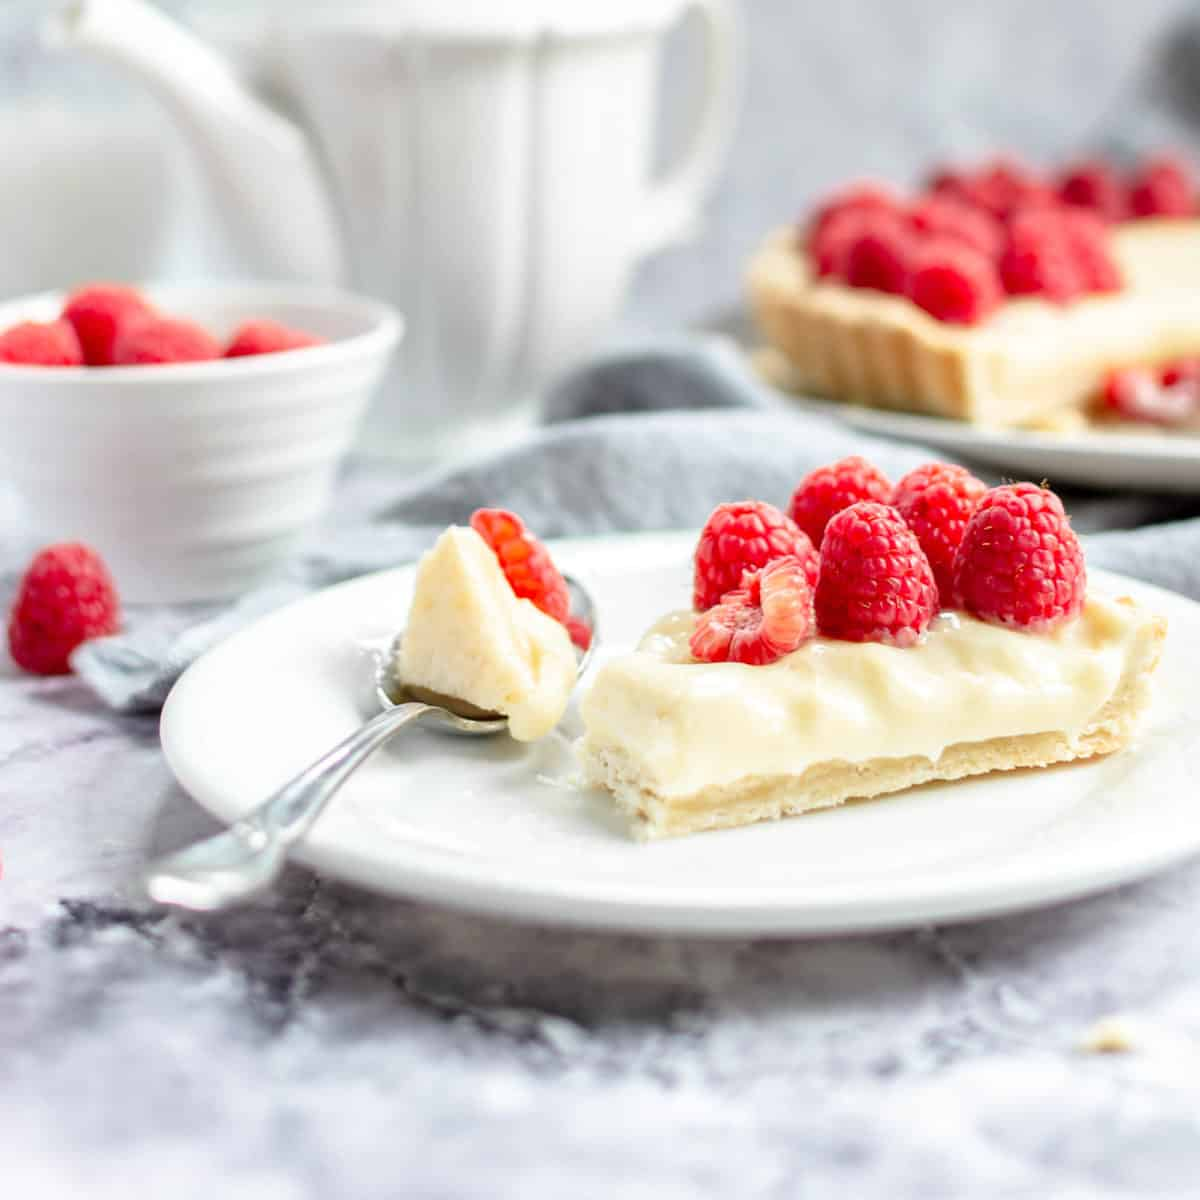 A slice of custard tart on a plate with a spoon and fresh raspberries.